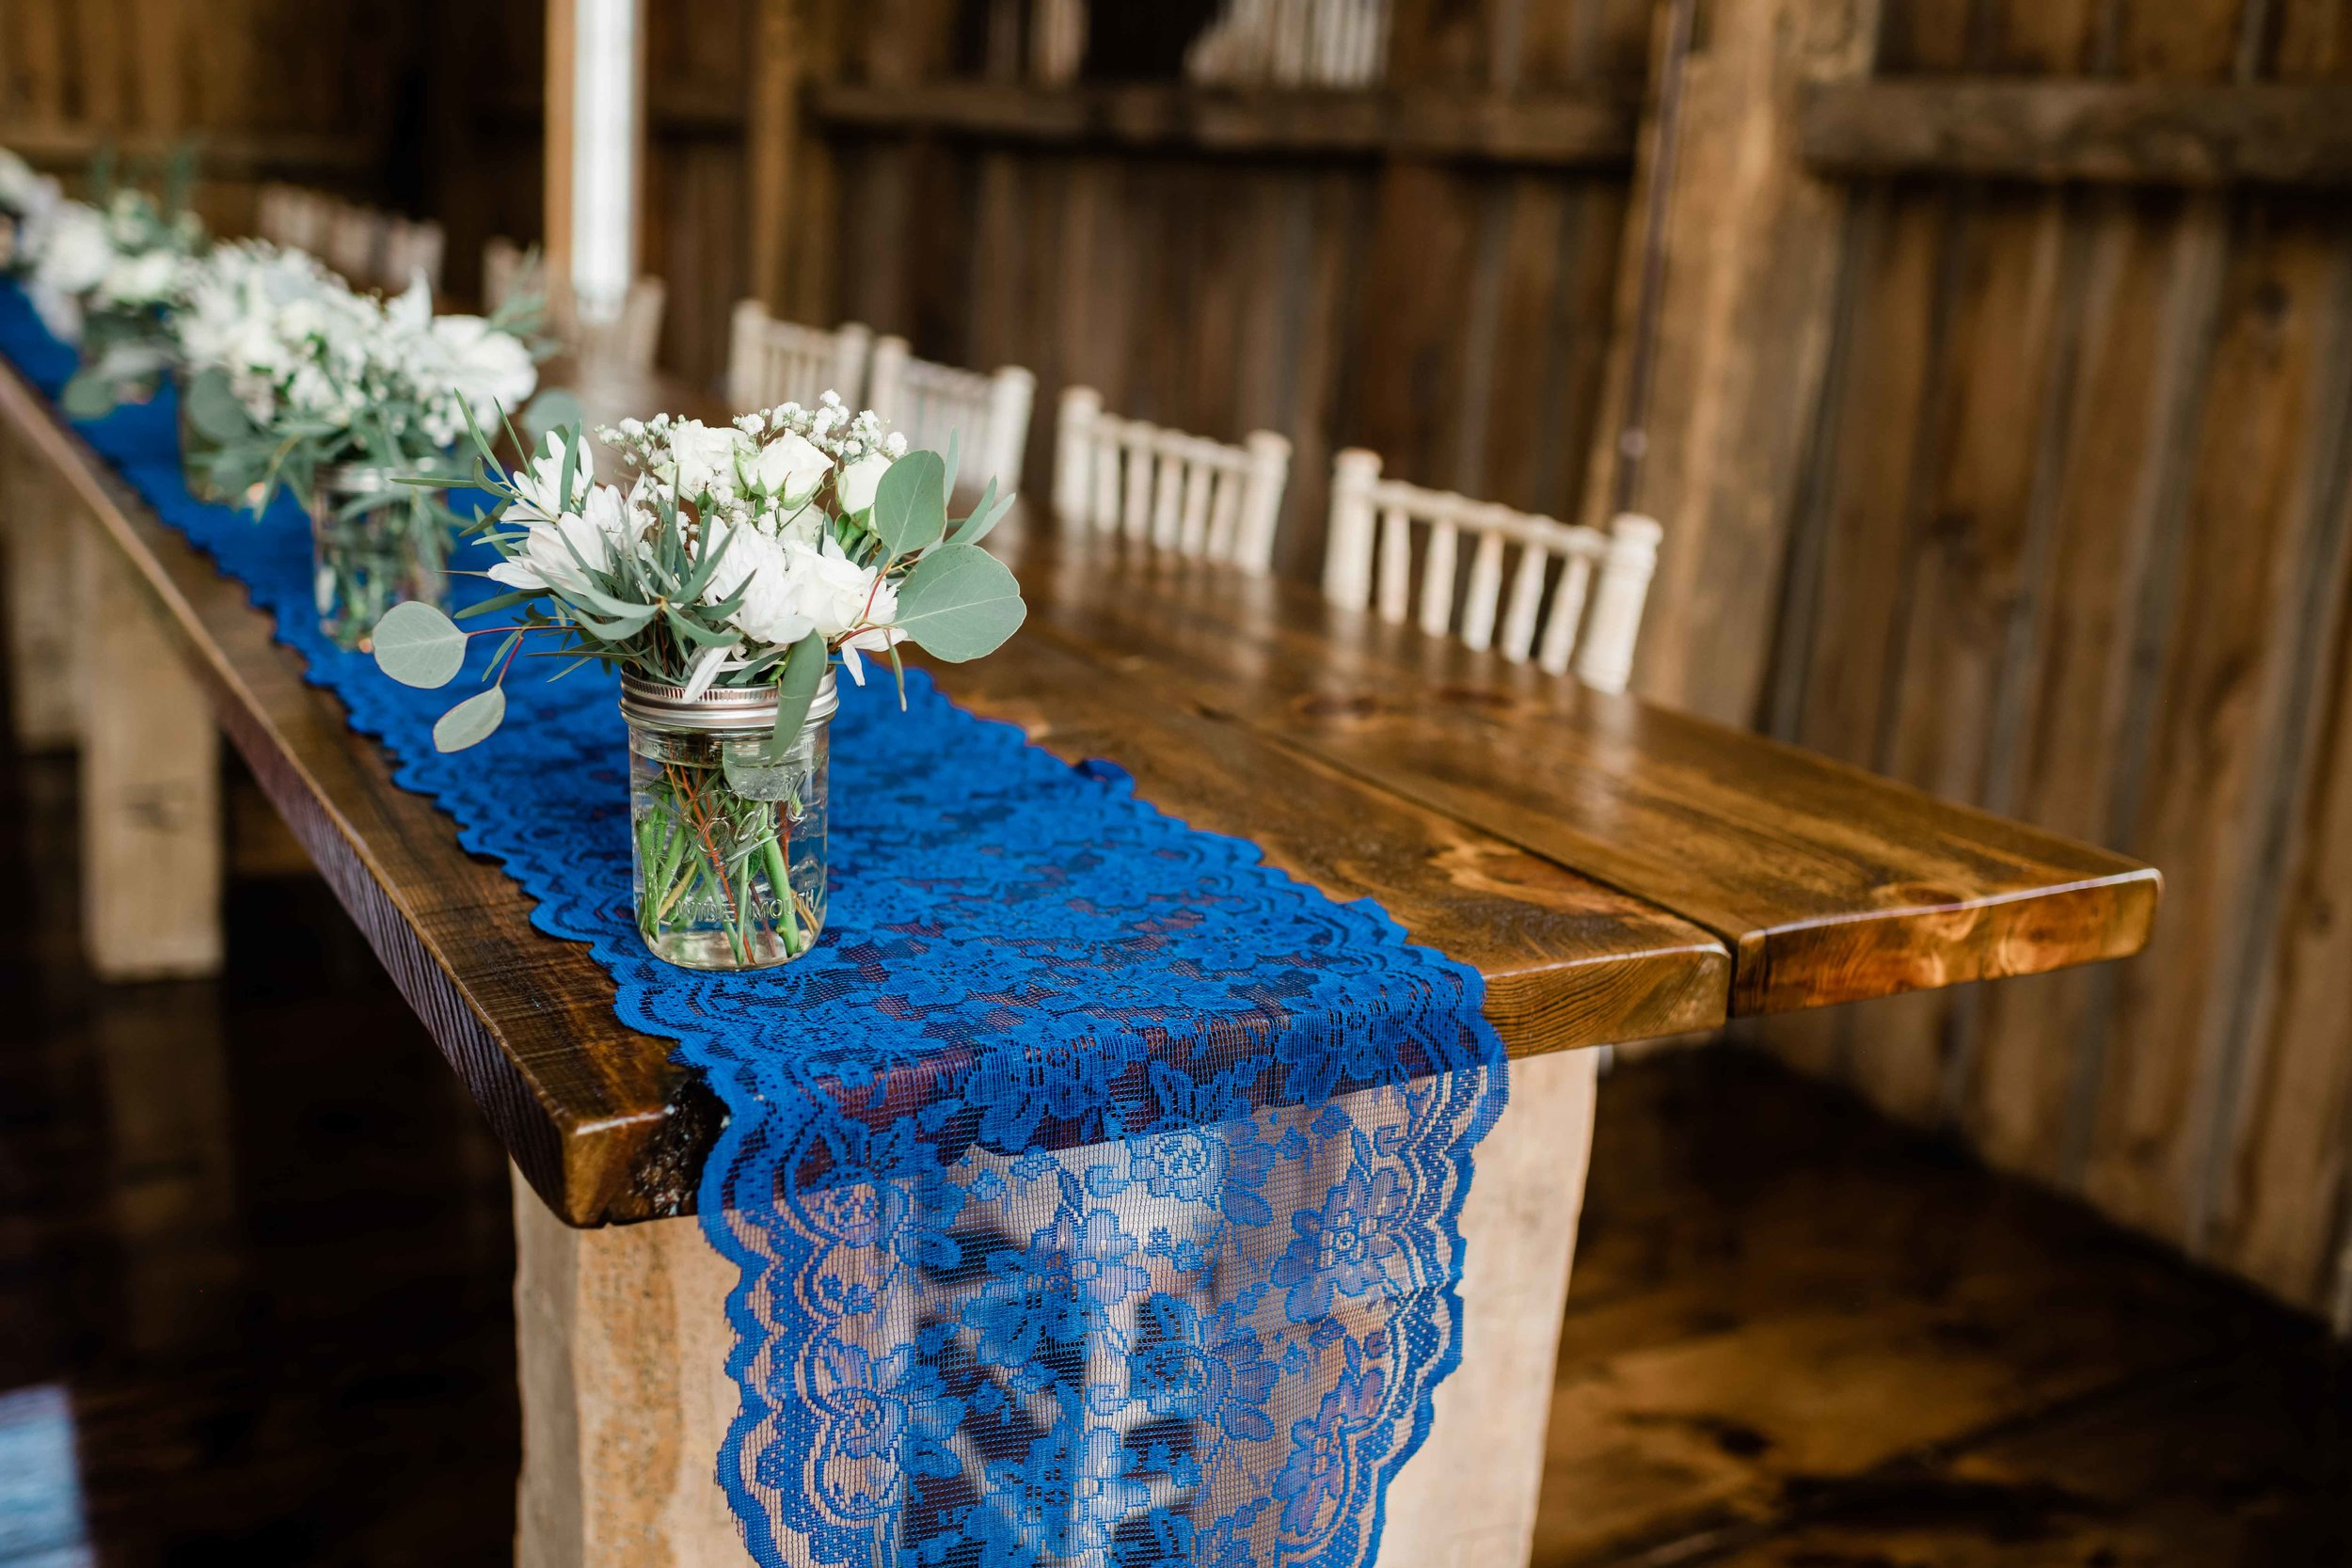 Blue lace table runner under jars of flowers